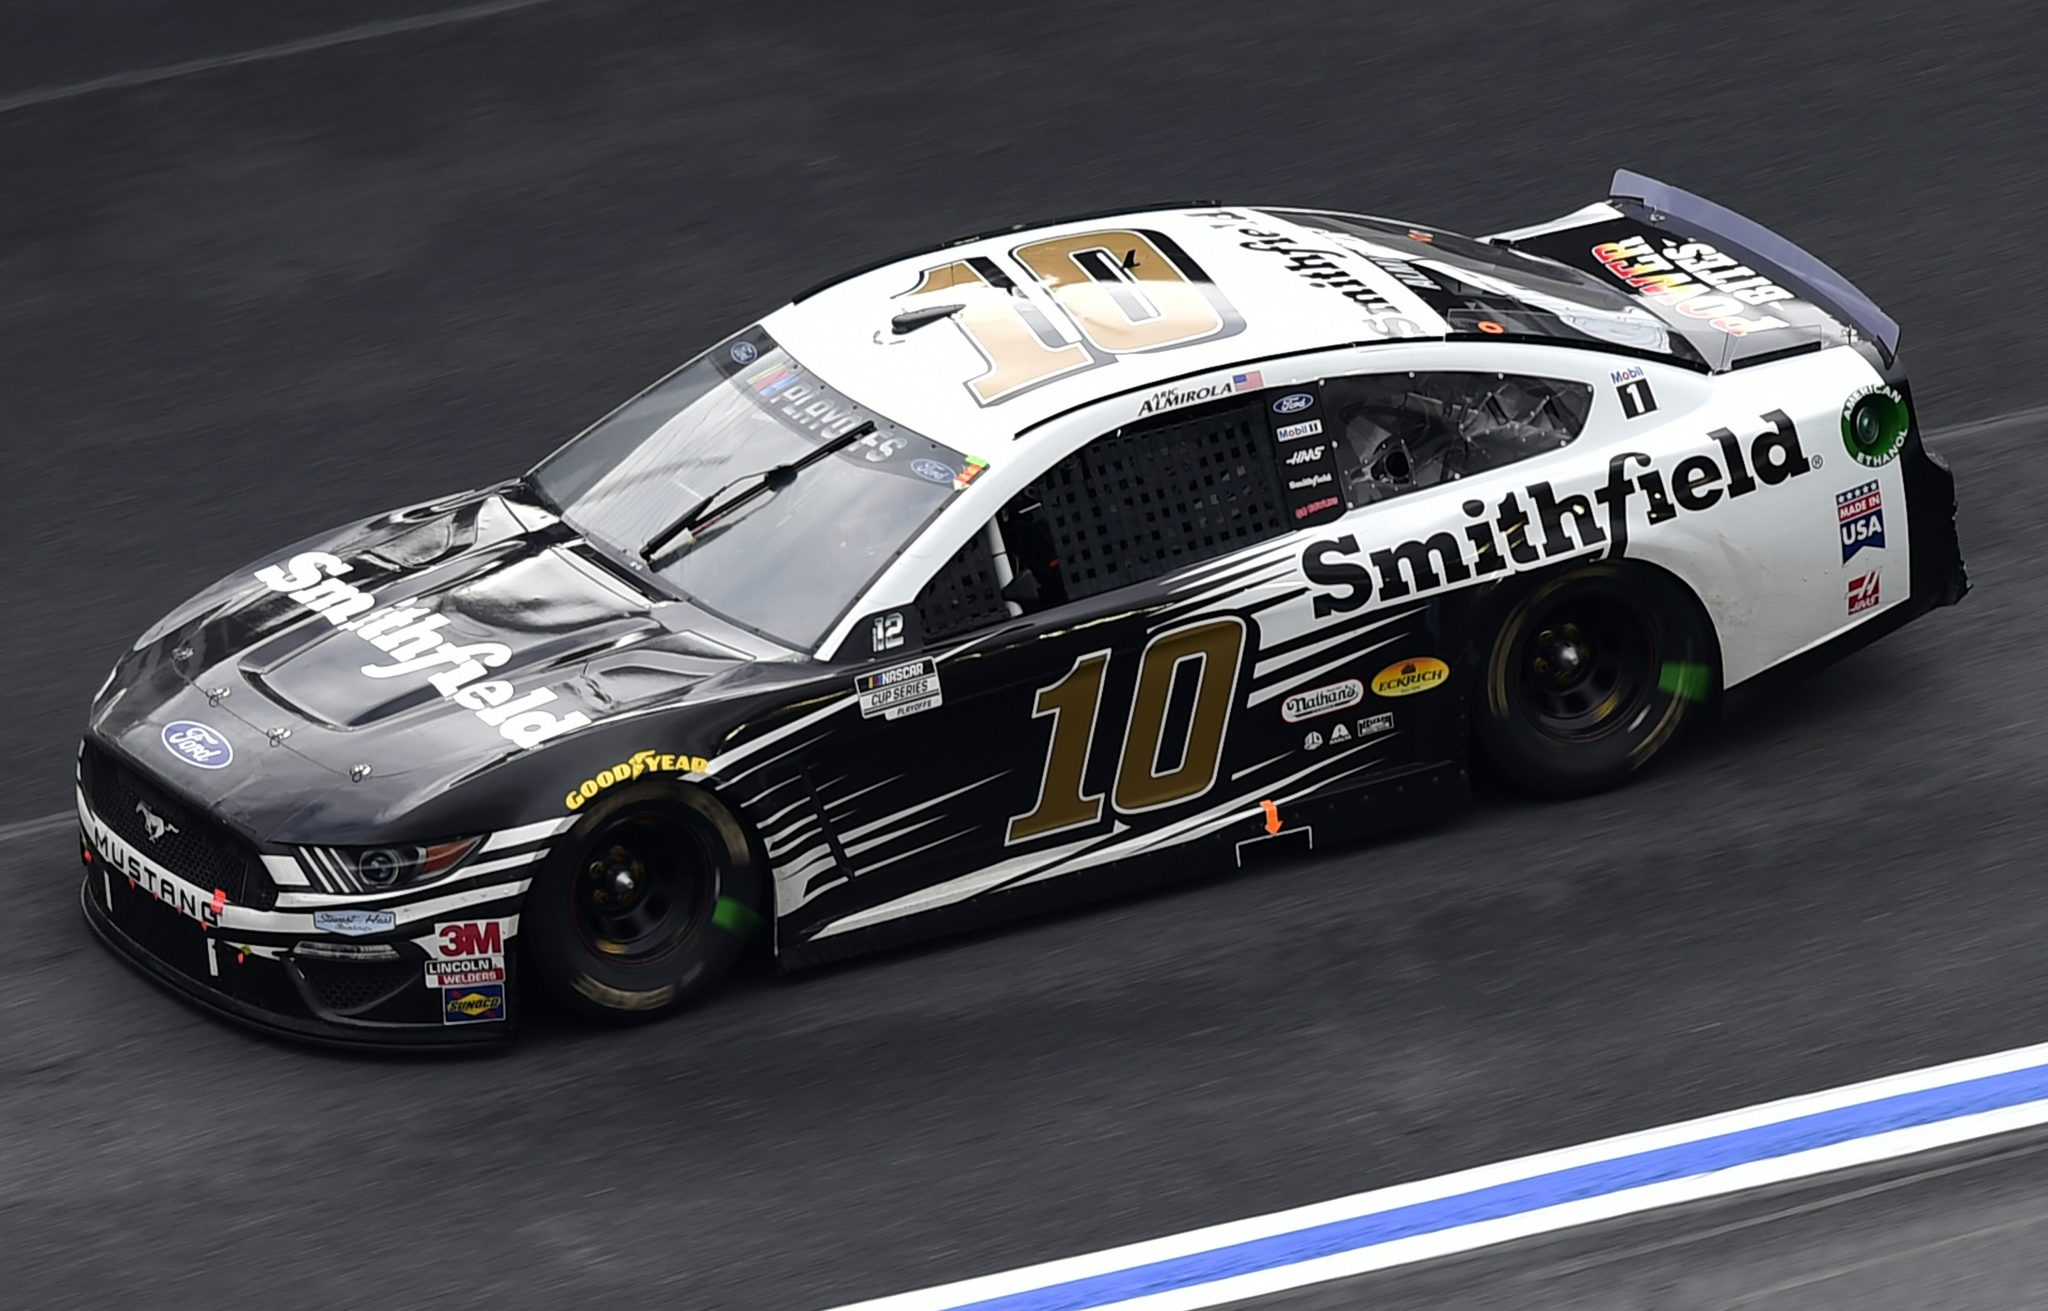 CONCORD, NORTH CAROLINA - OCTOBER 11: Aric Almirola, driver of the #10 Smithfield Ford, drives during the NASCAR Cup Series Bank of America ROVAL 400 at Charlotte Motor Speedway on October 11, 2020 in Concord, North Carolina. (Photo by Jared C. Tilton/Getty Images) | Getty Images